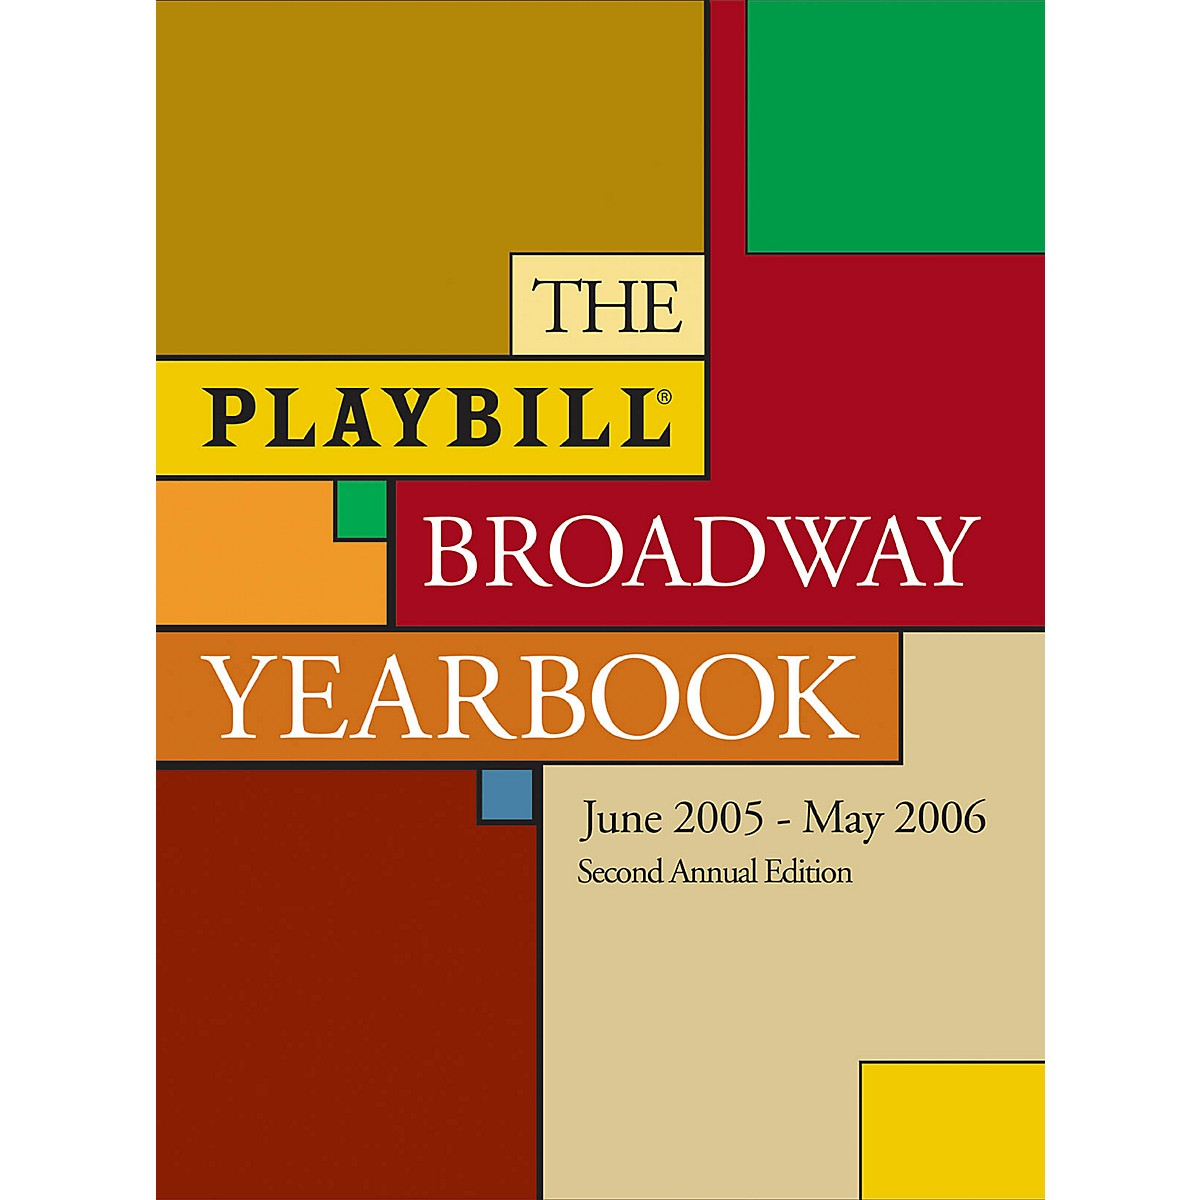 Applause Books The Playbill Broadway Yearbook Playbill Broadway Yearbook Series Hardcover